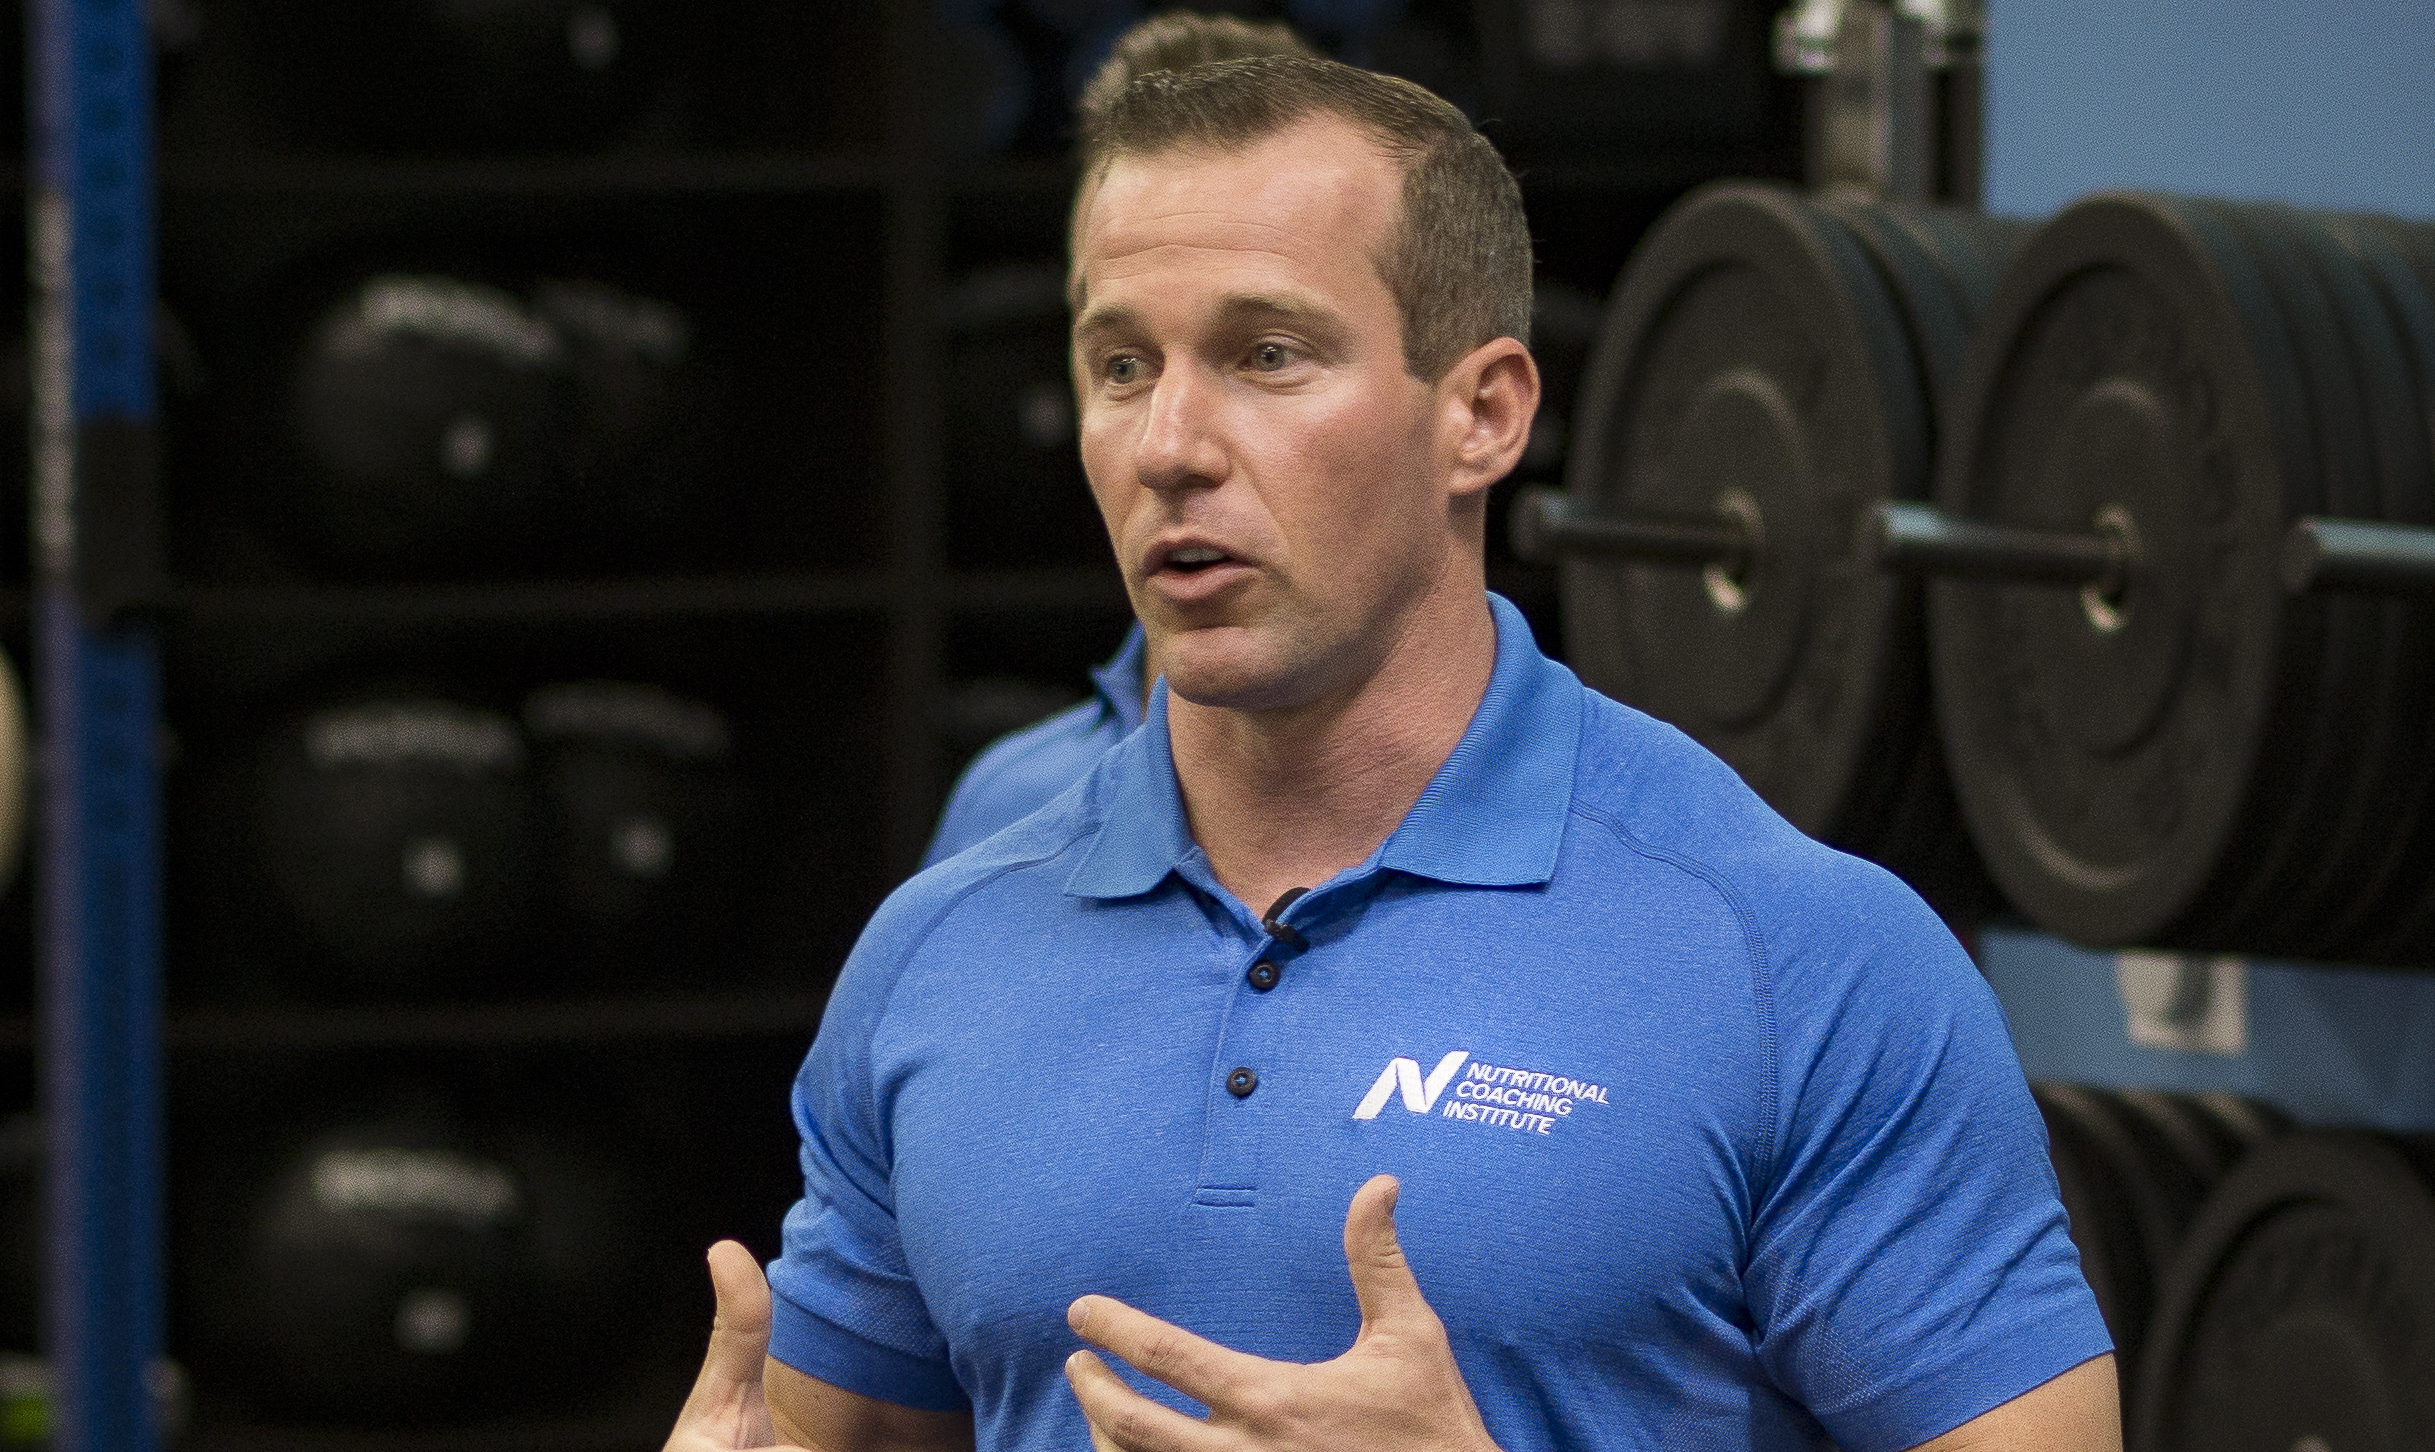 Jason Phillips teaching nutrition coach classes